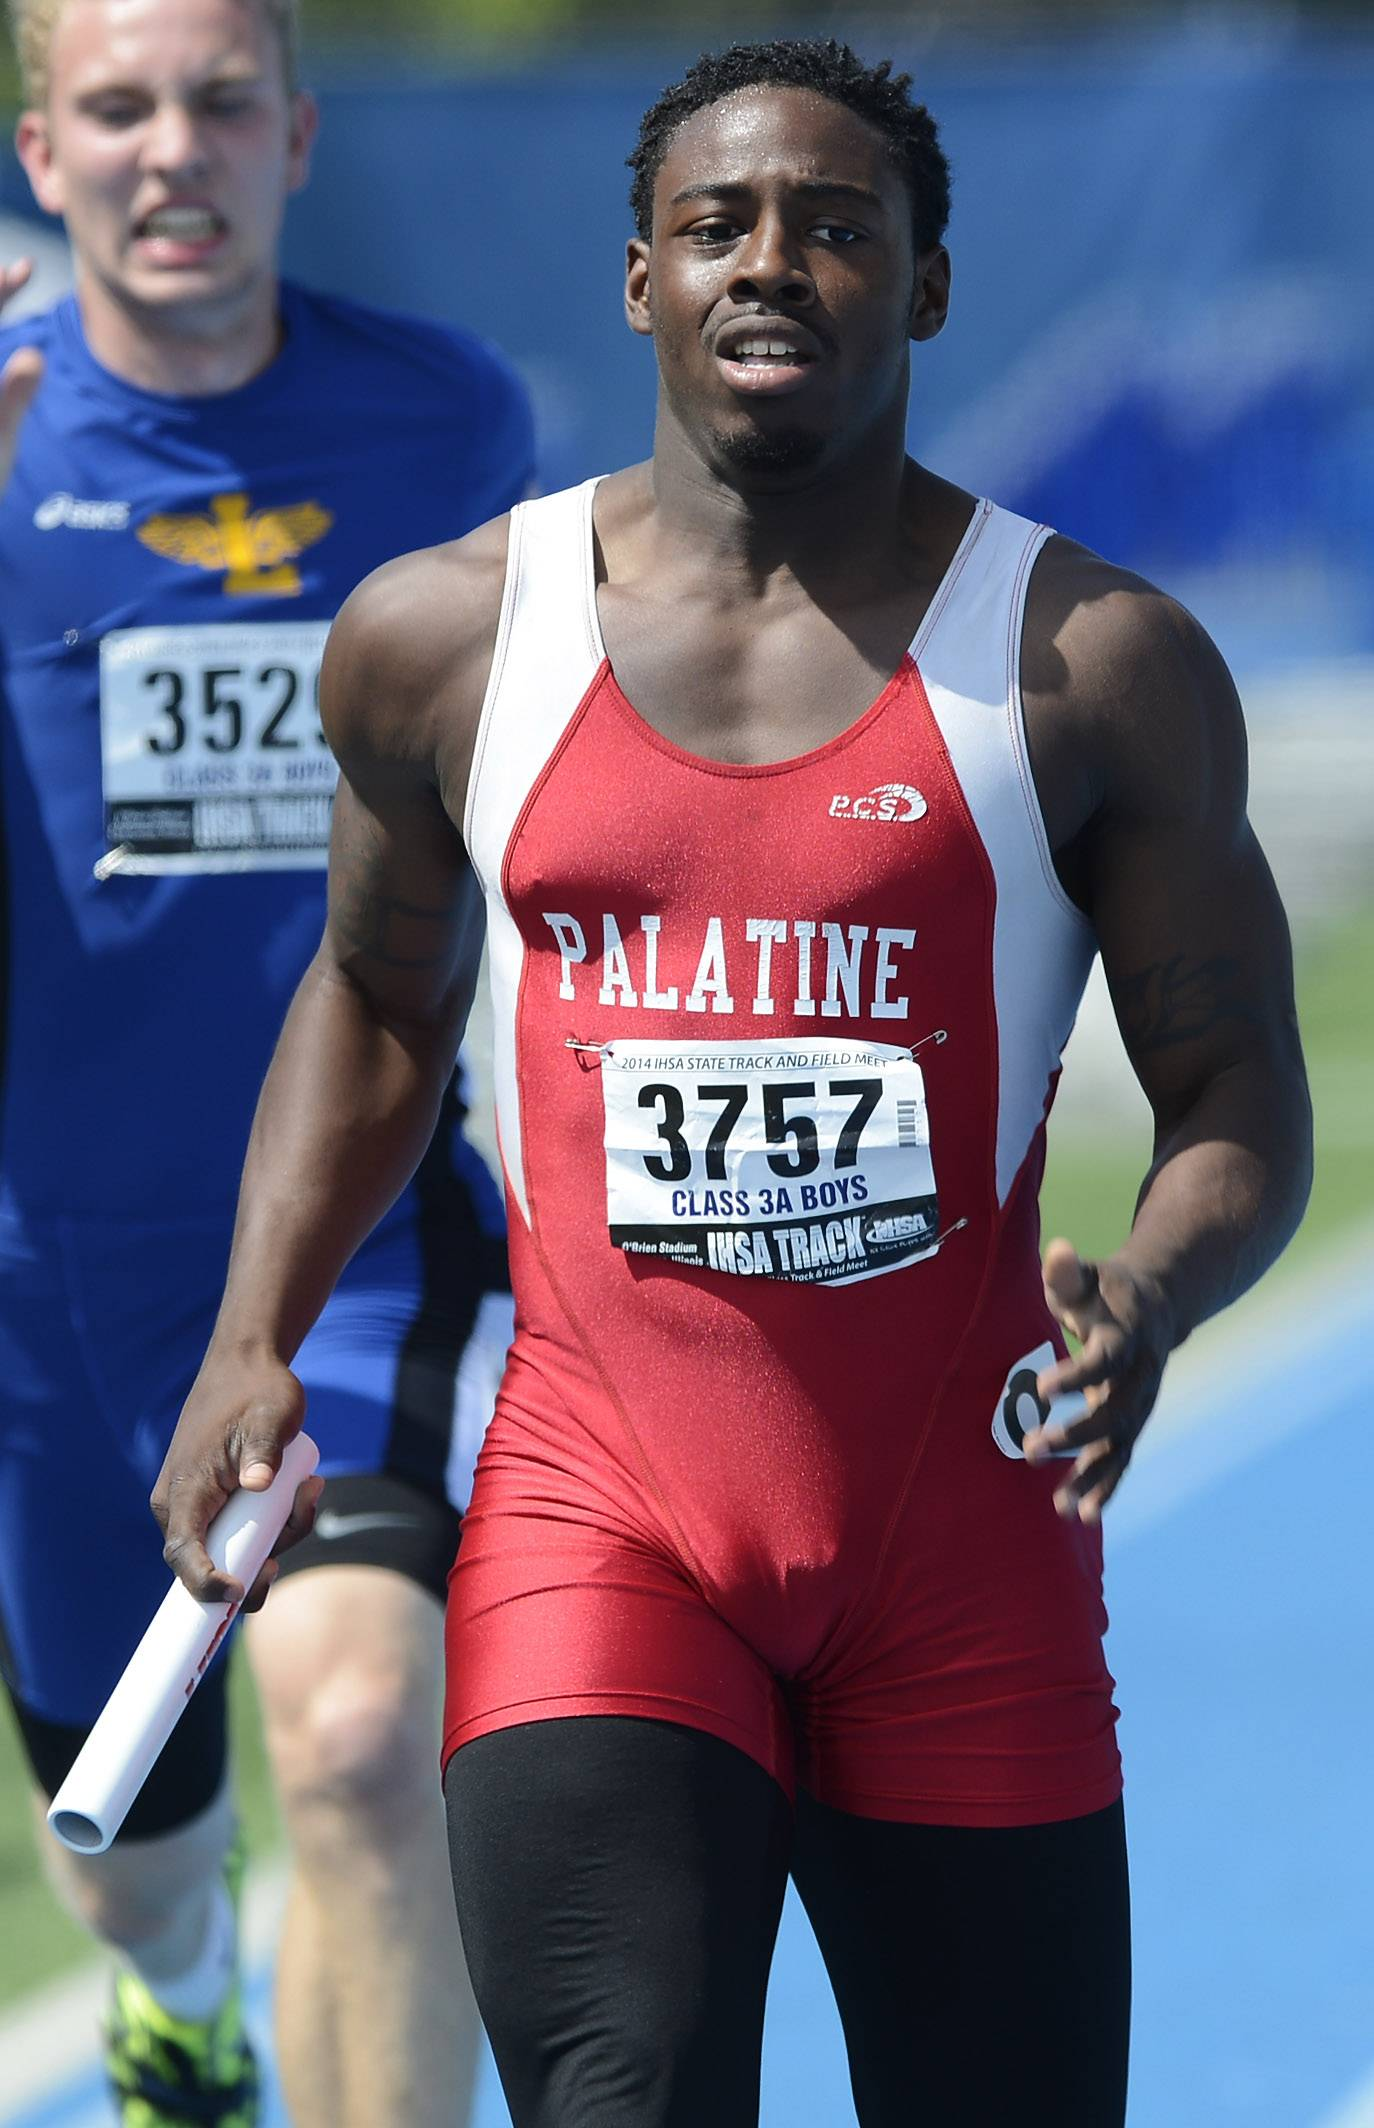 Palatine's Chaka Kelly crosses the finish line while running ion the anchor leg of the 4x200-meter relay during the boys Class 3A state track and field preliminaries in Charleston Friday.